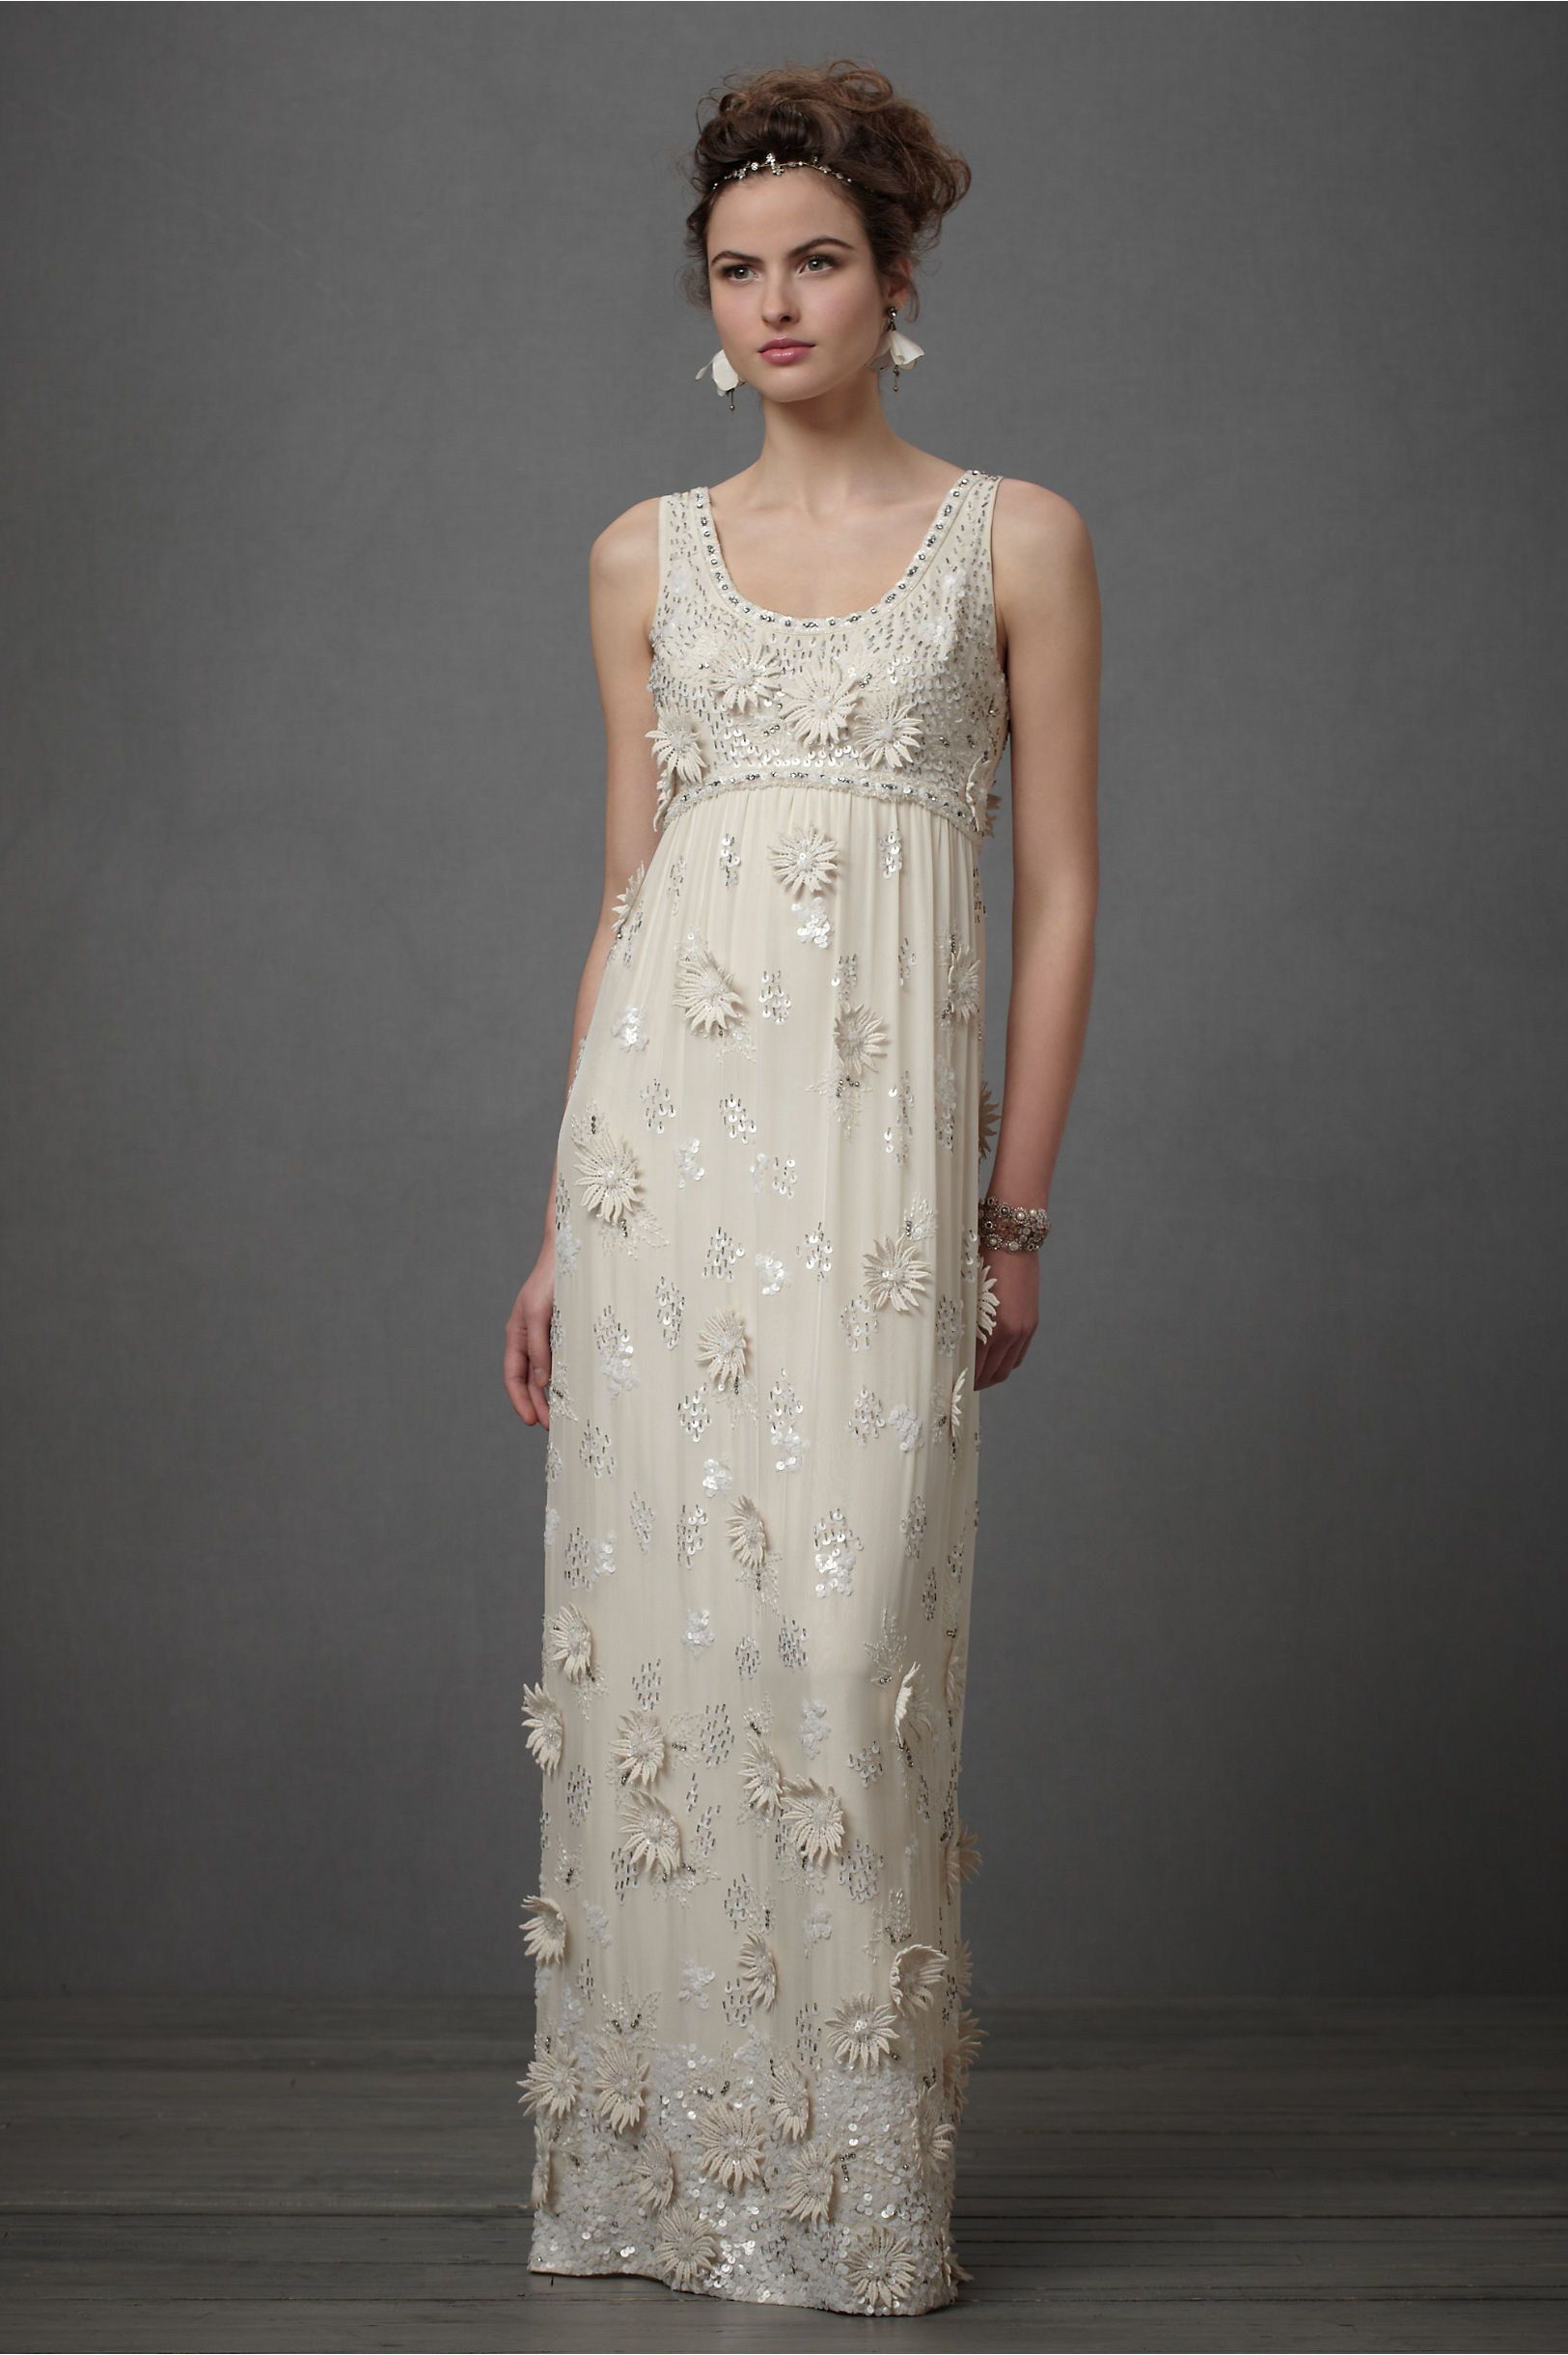 25 Vintage Wedding Dresses Ideas | Bhldn, Gowns and Wedding dress